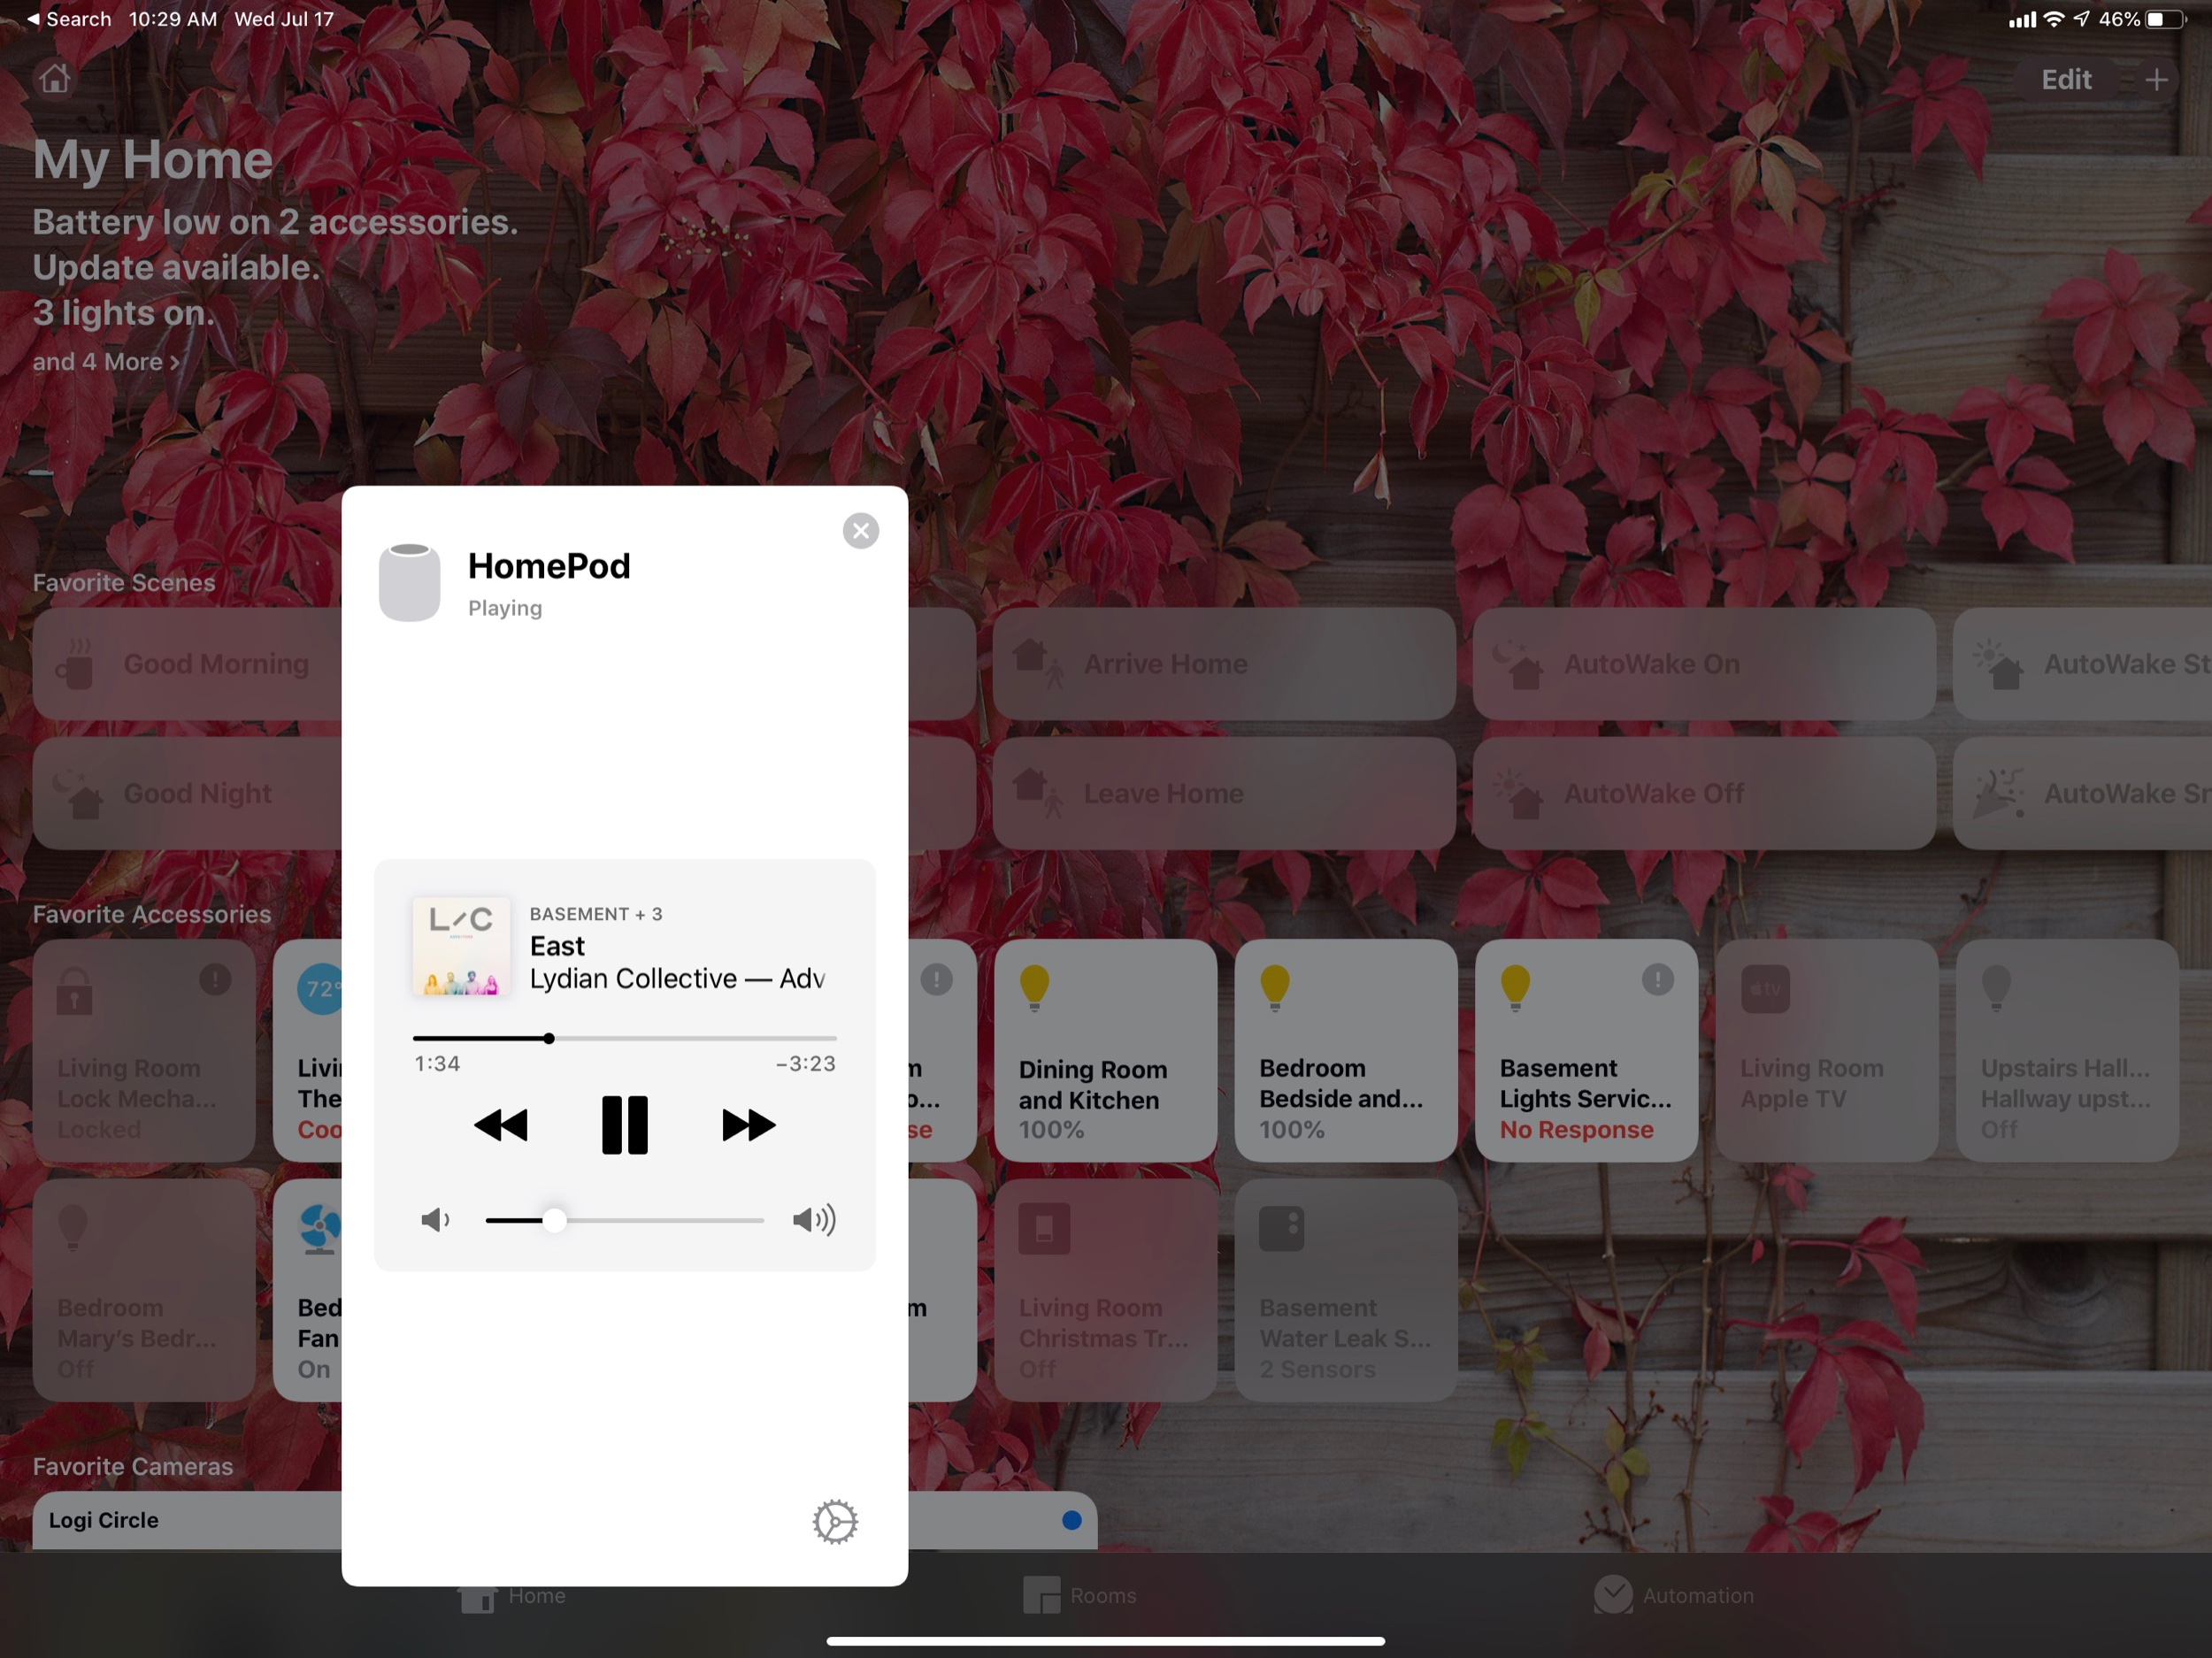 In iOS 13, HomePod play controls show up right in the Home app.